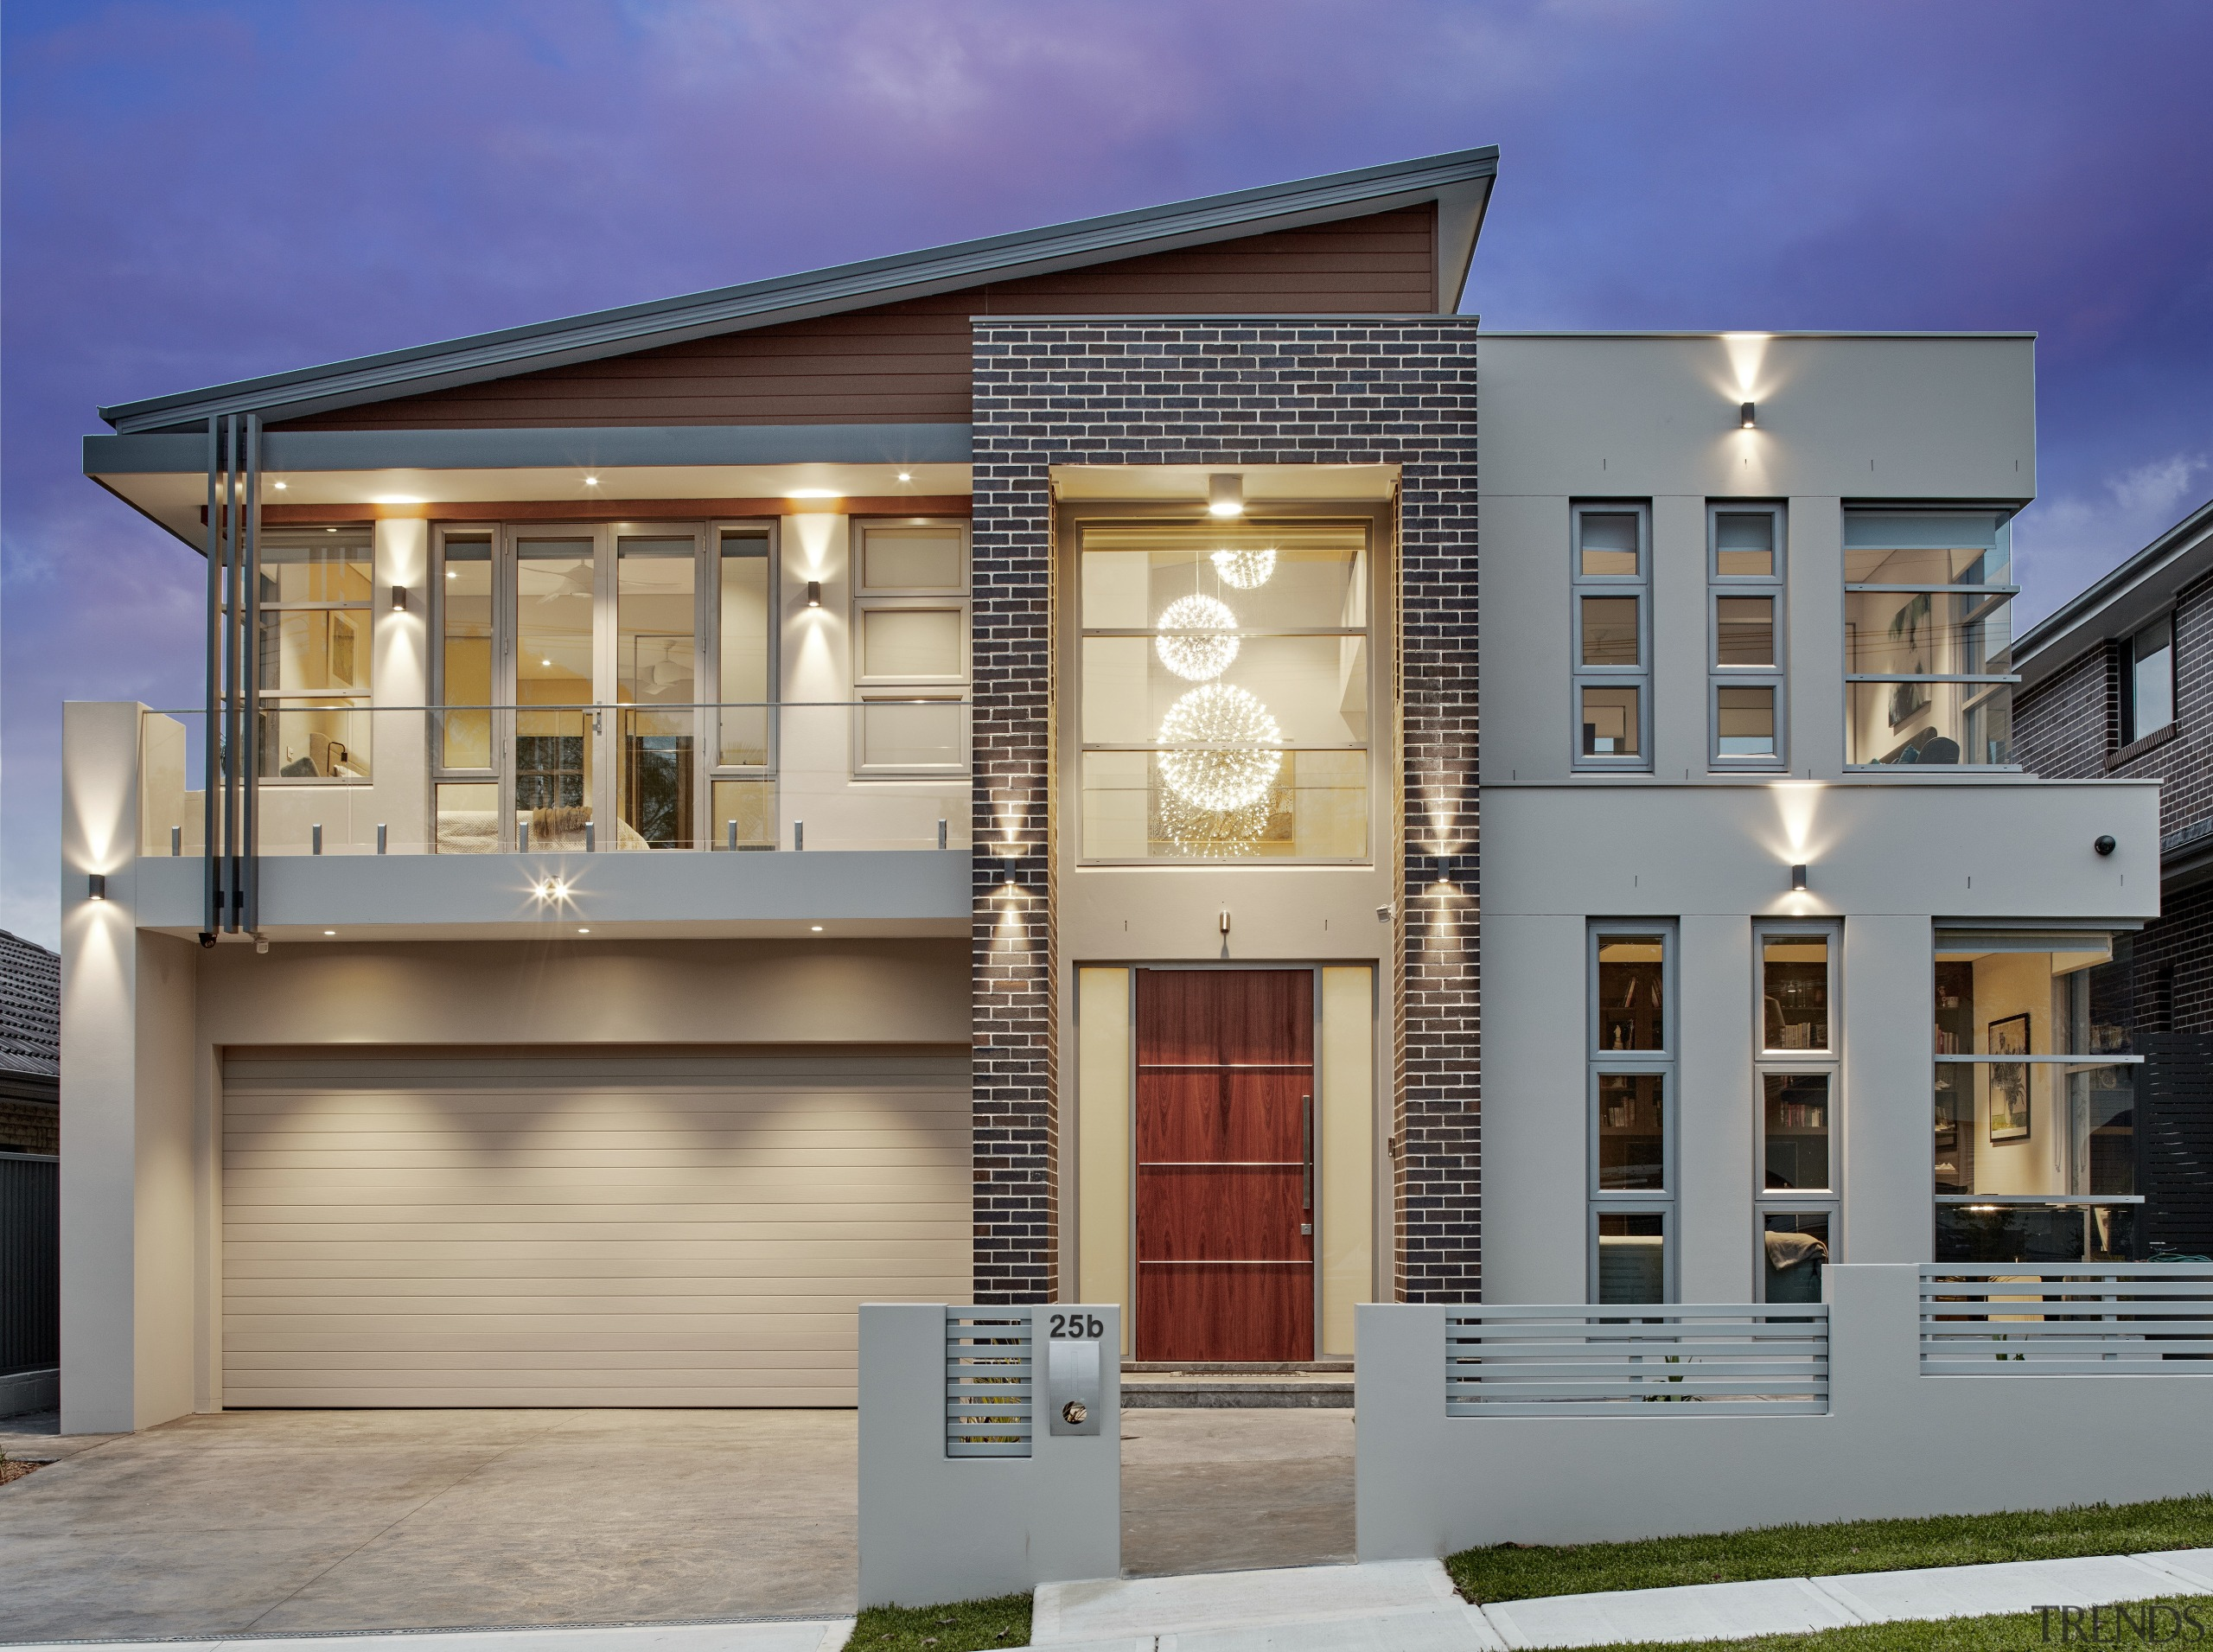 An architectural facade, large double garage, double-height atrium, architecture, building, commercial building, elevation, estate, facade, home, house, mixed use, property, real estate, residential area, siding, window, gray